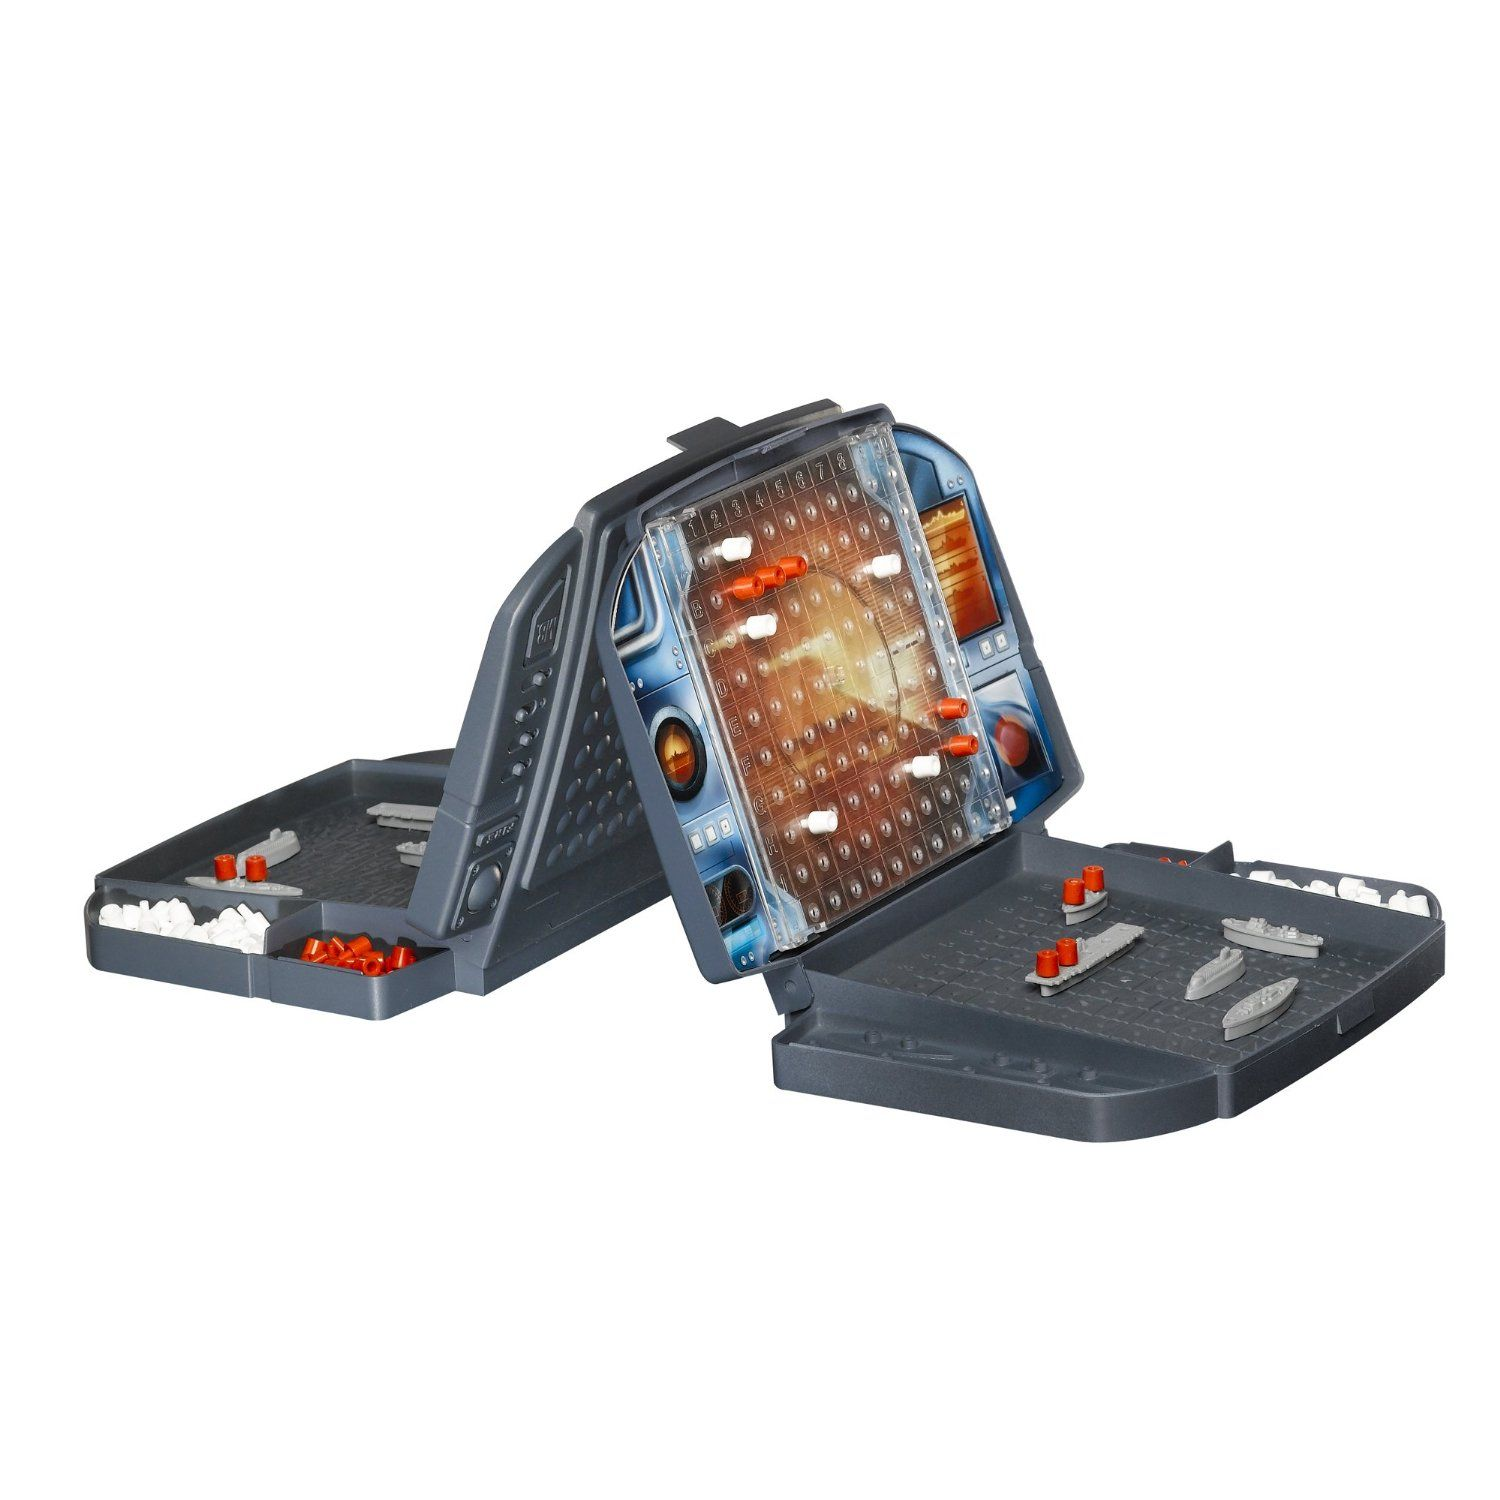 Battleship Game Toys & Games (With images